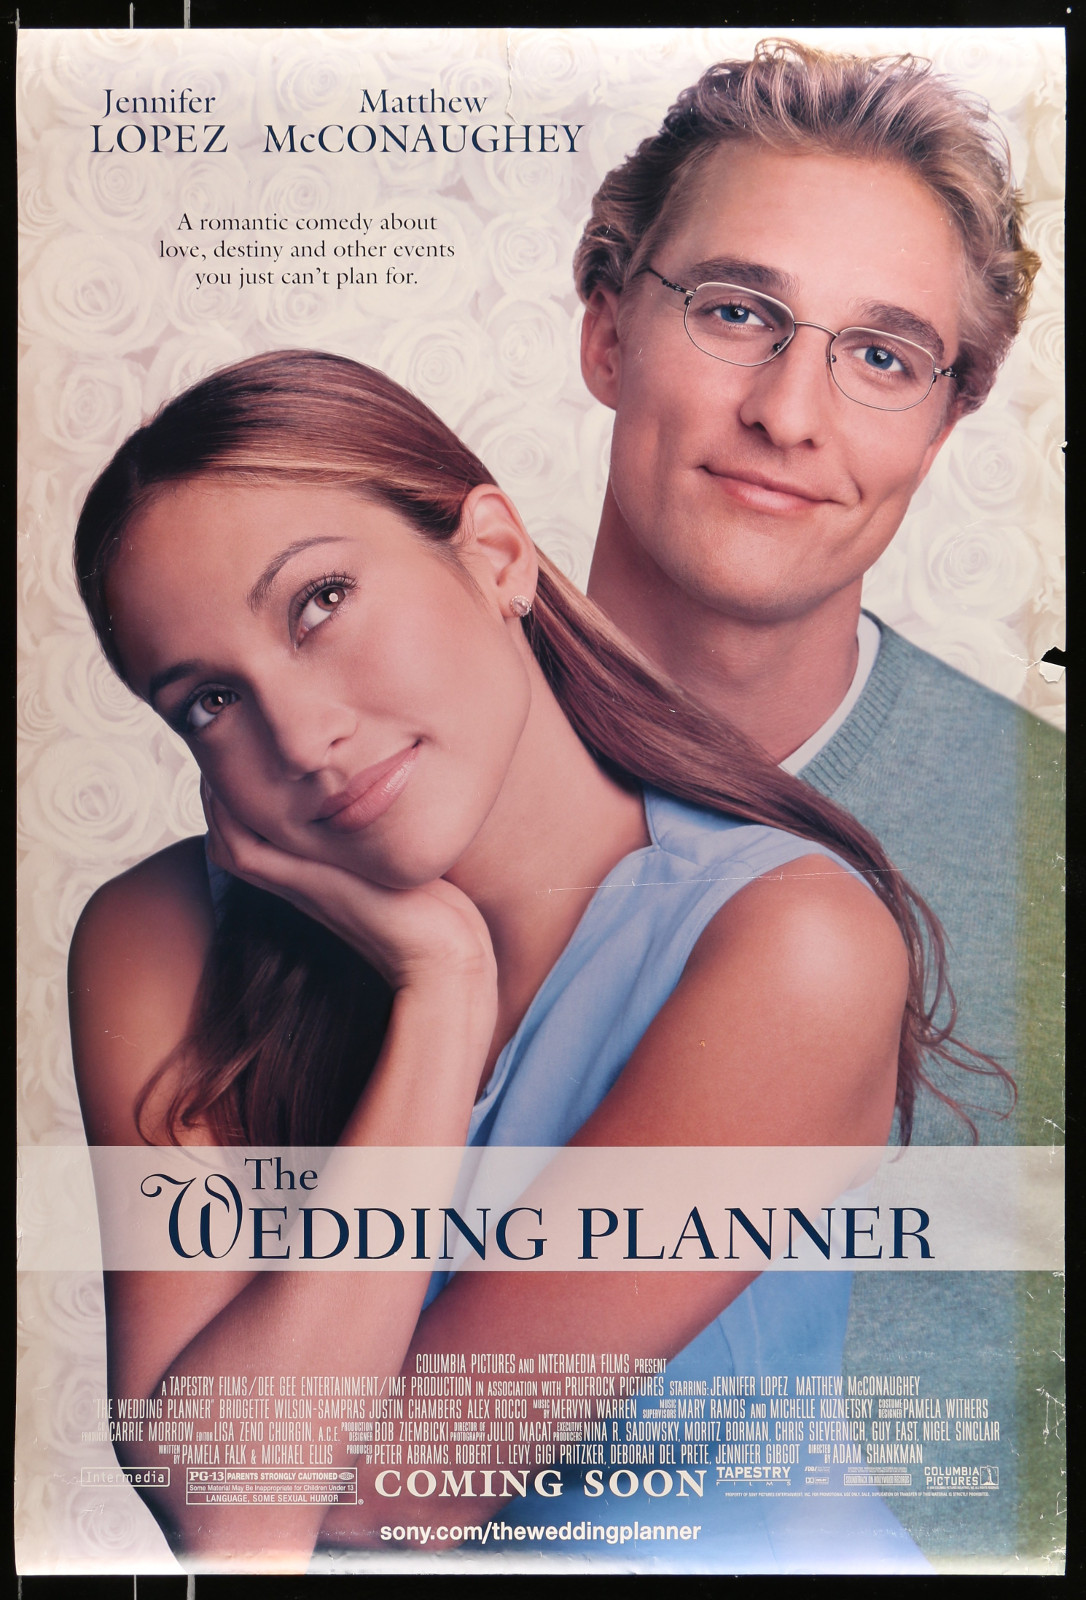 The Wedding Planner 2A413 A Part Of A Lot 20 Unfolded Mostly Double-Sided 27X40 One-Sheets '90S-00S Great Movie Images!